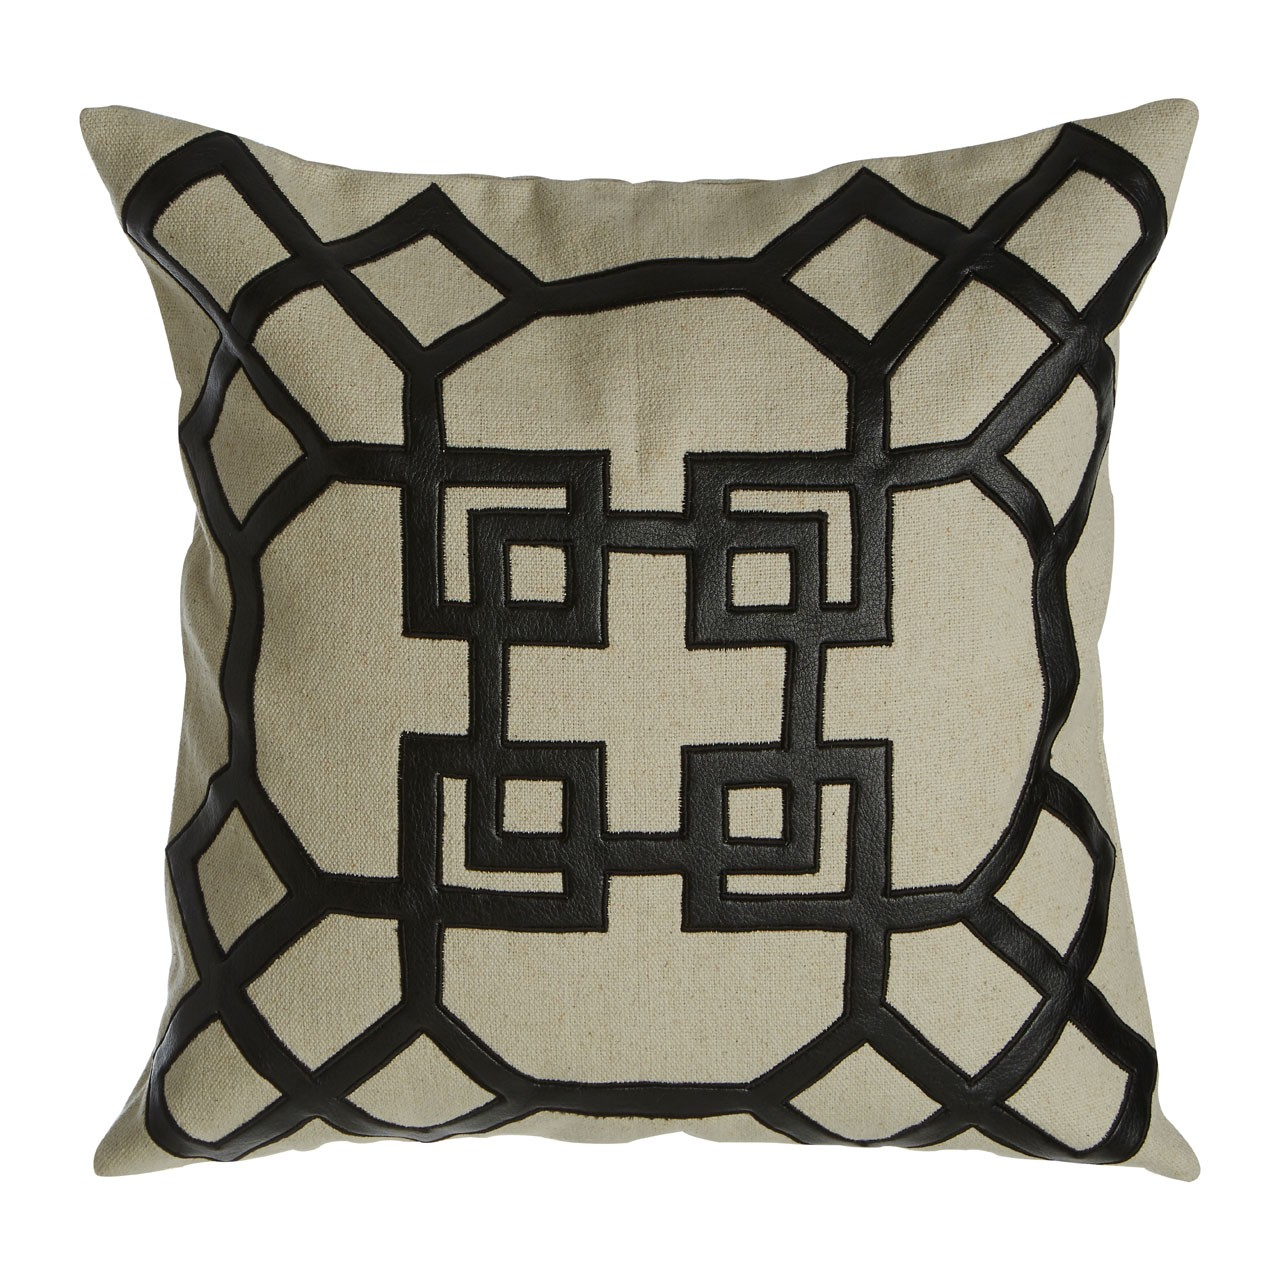 Prime Furnishing Hampstead Leather Effect Cushion, Natural/Black